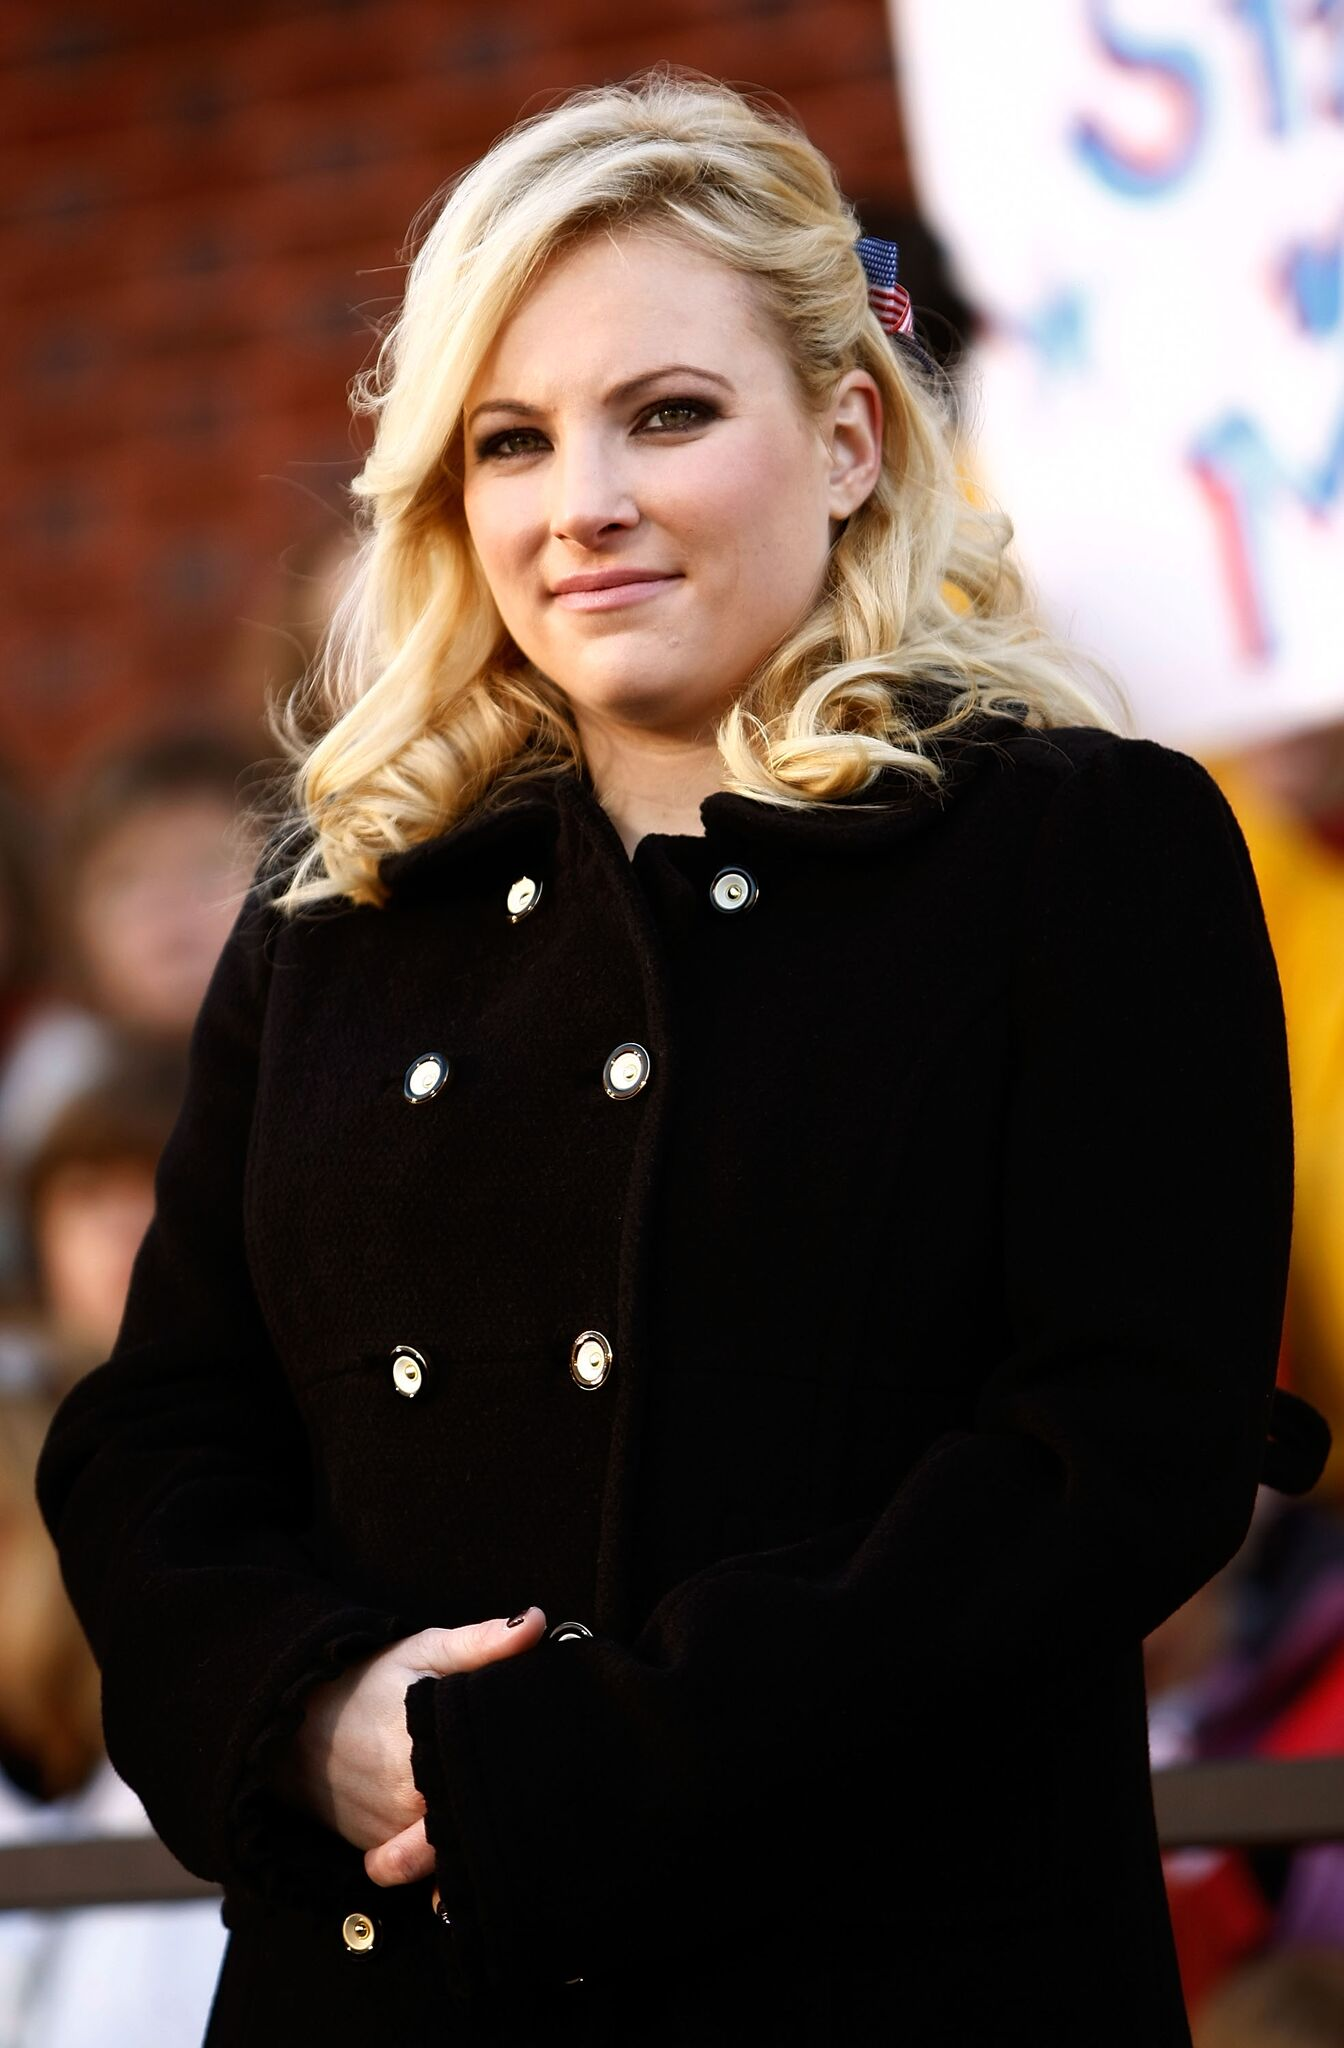 Meghan McCain attends a campaign rally at Defiance Junior High School October 30, 2008 | Photo: Getty Images